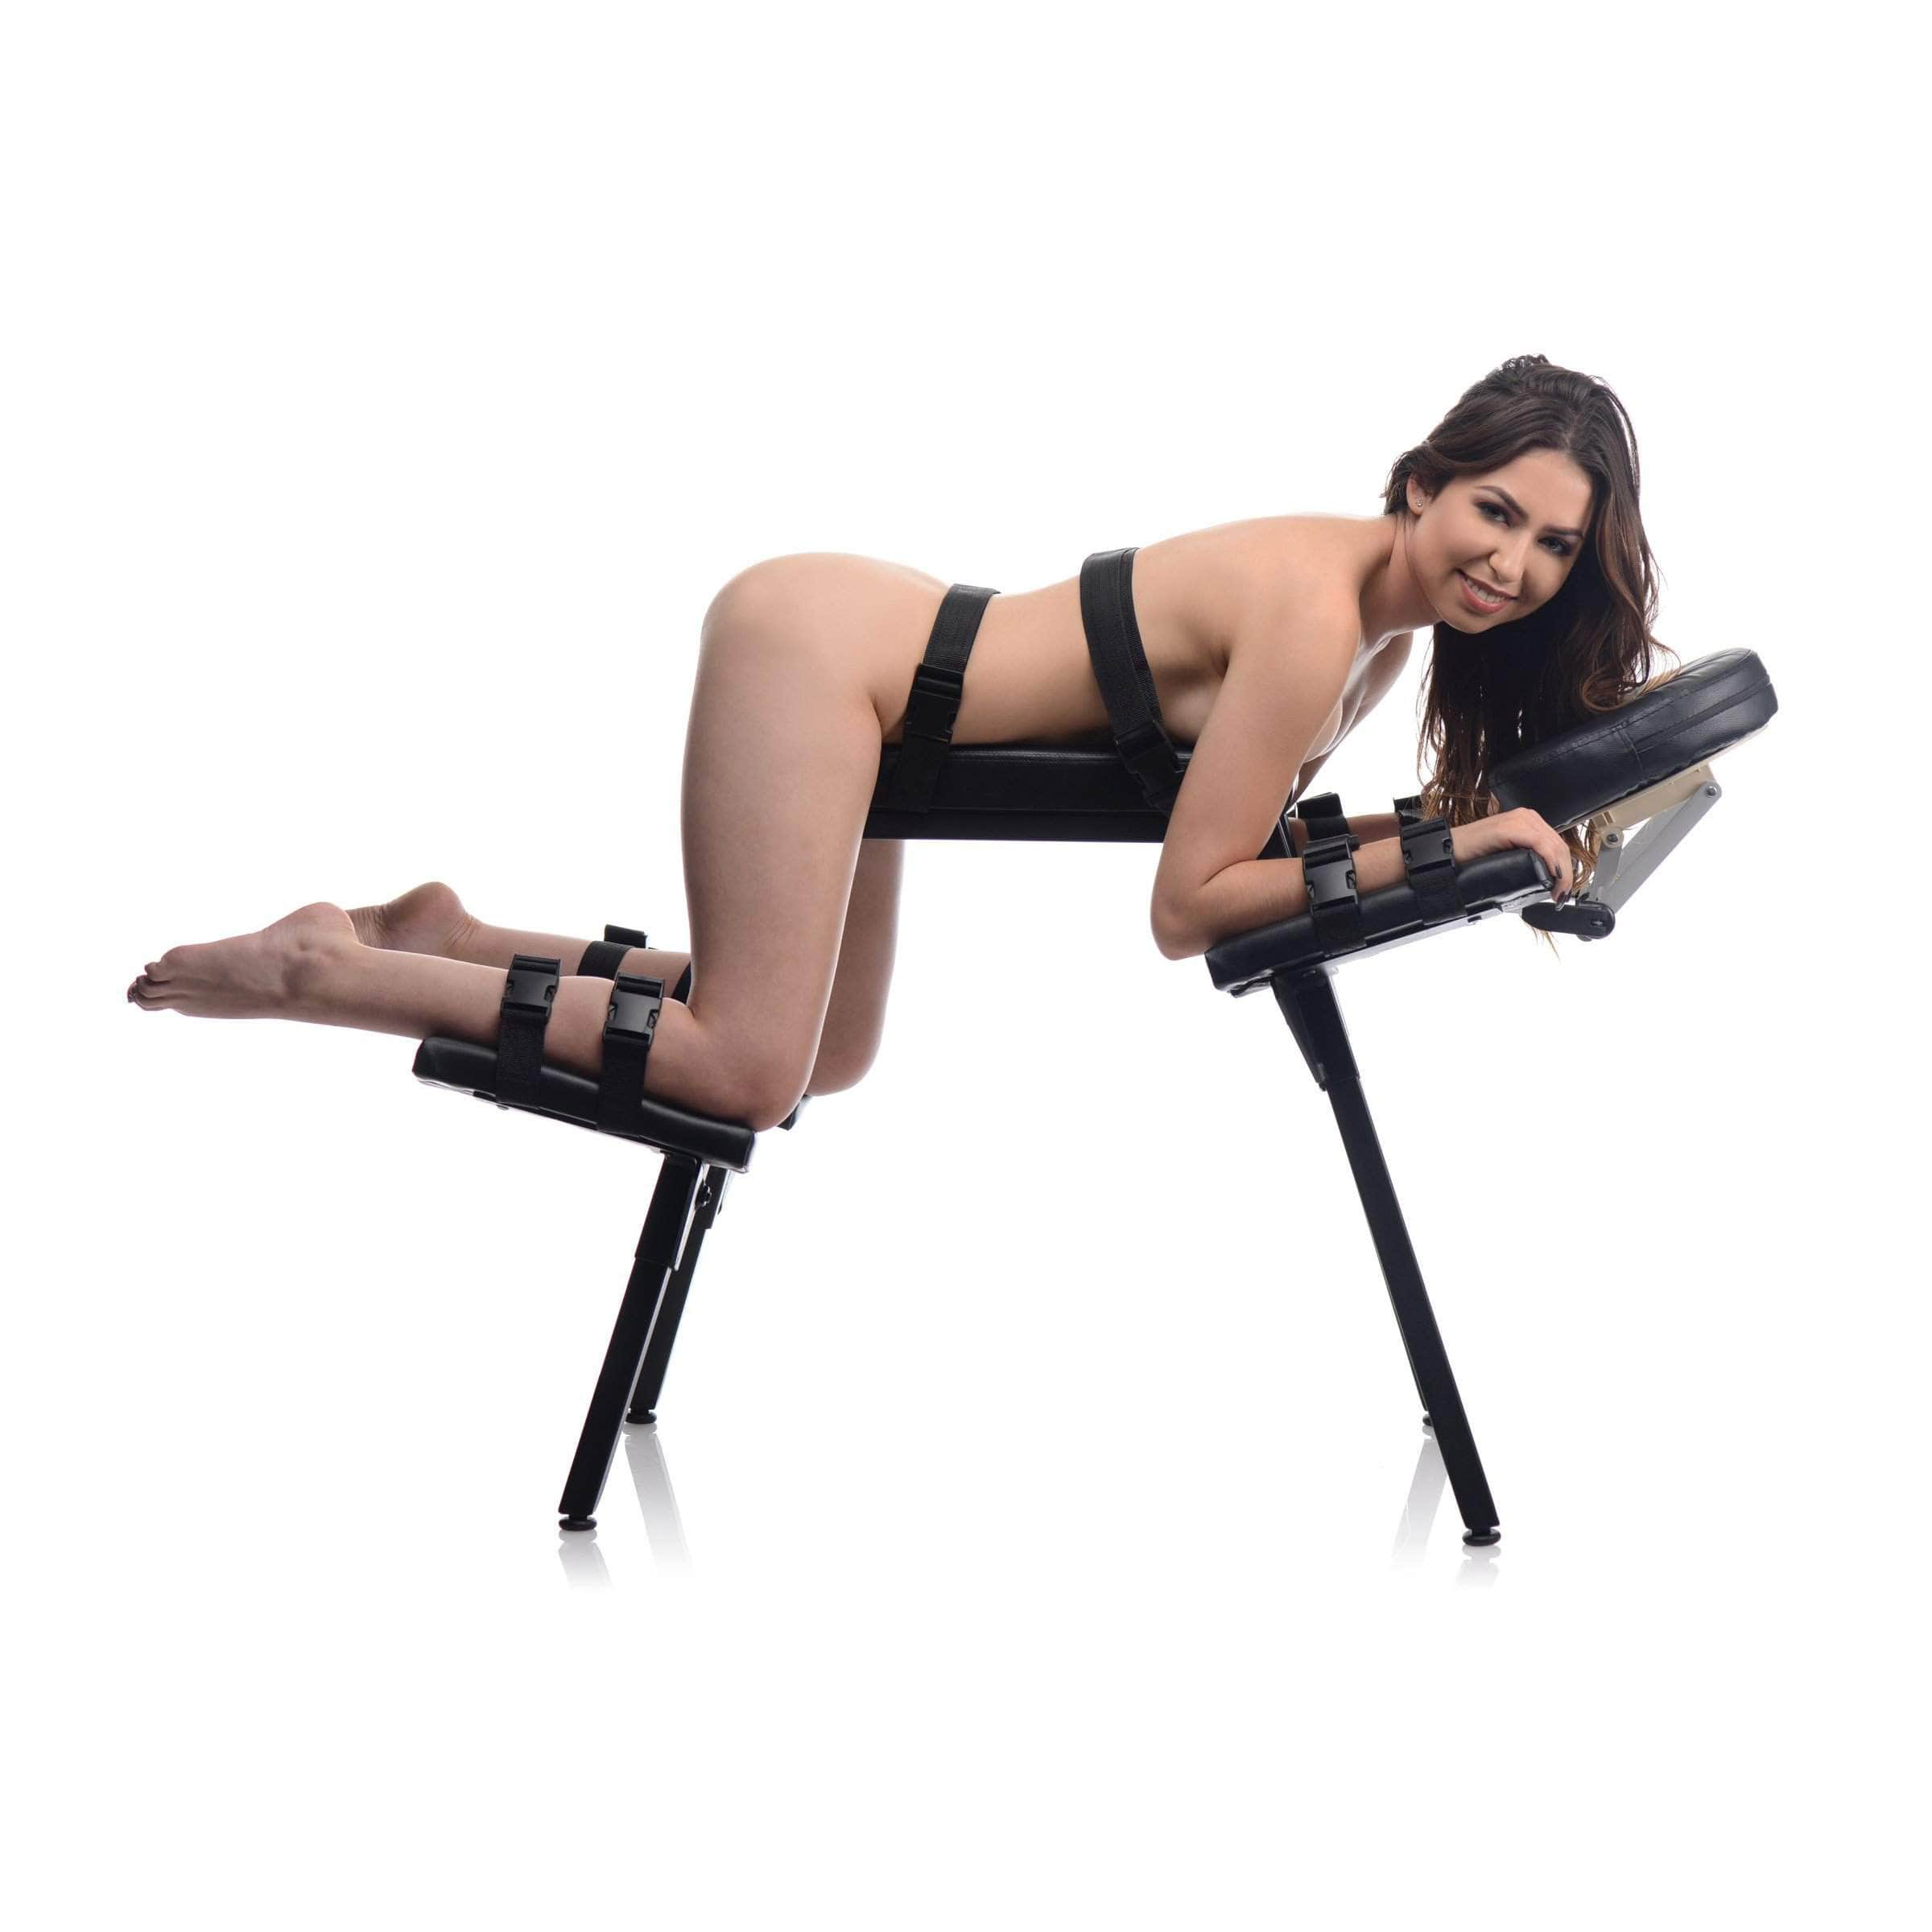 Obedience Extreme Sex Bench With Restraint Straps